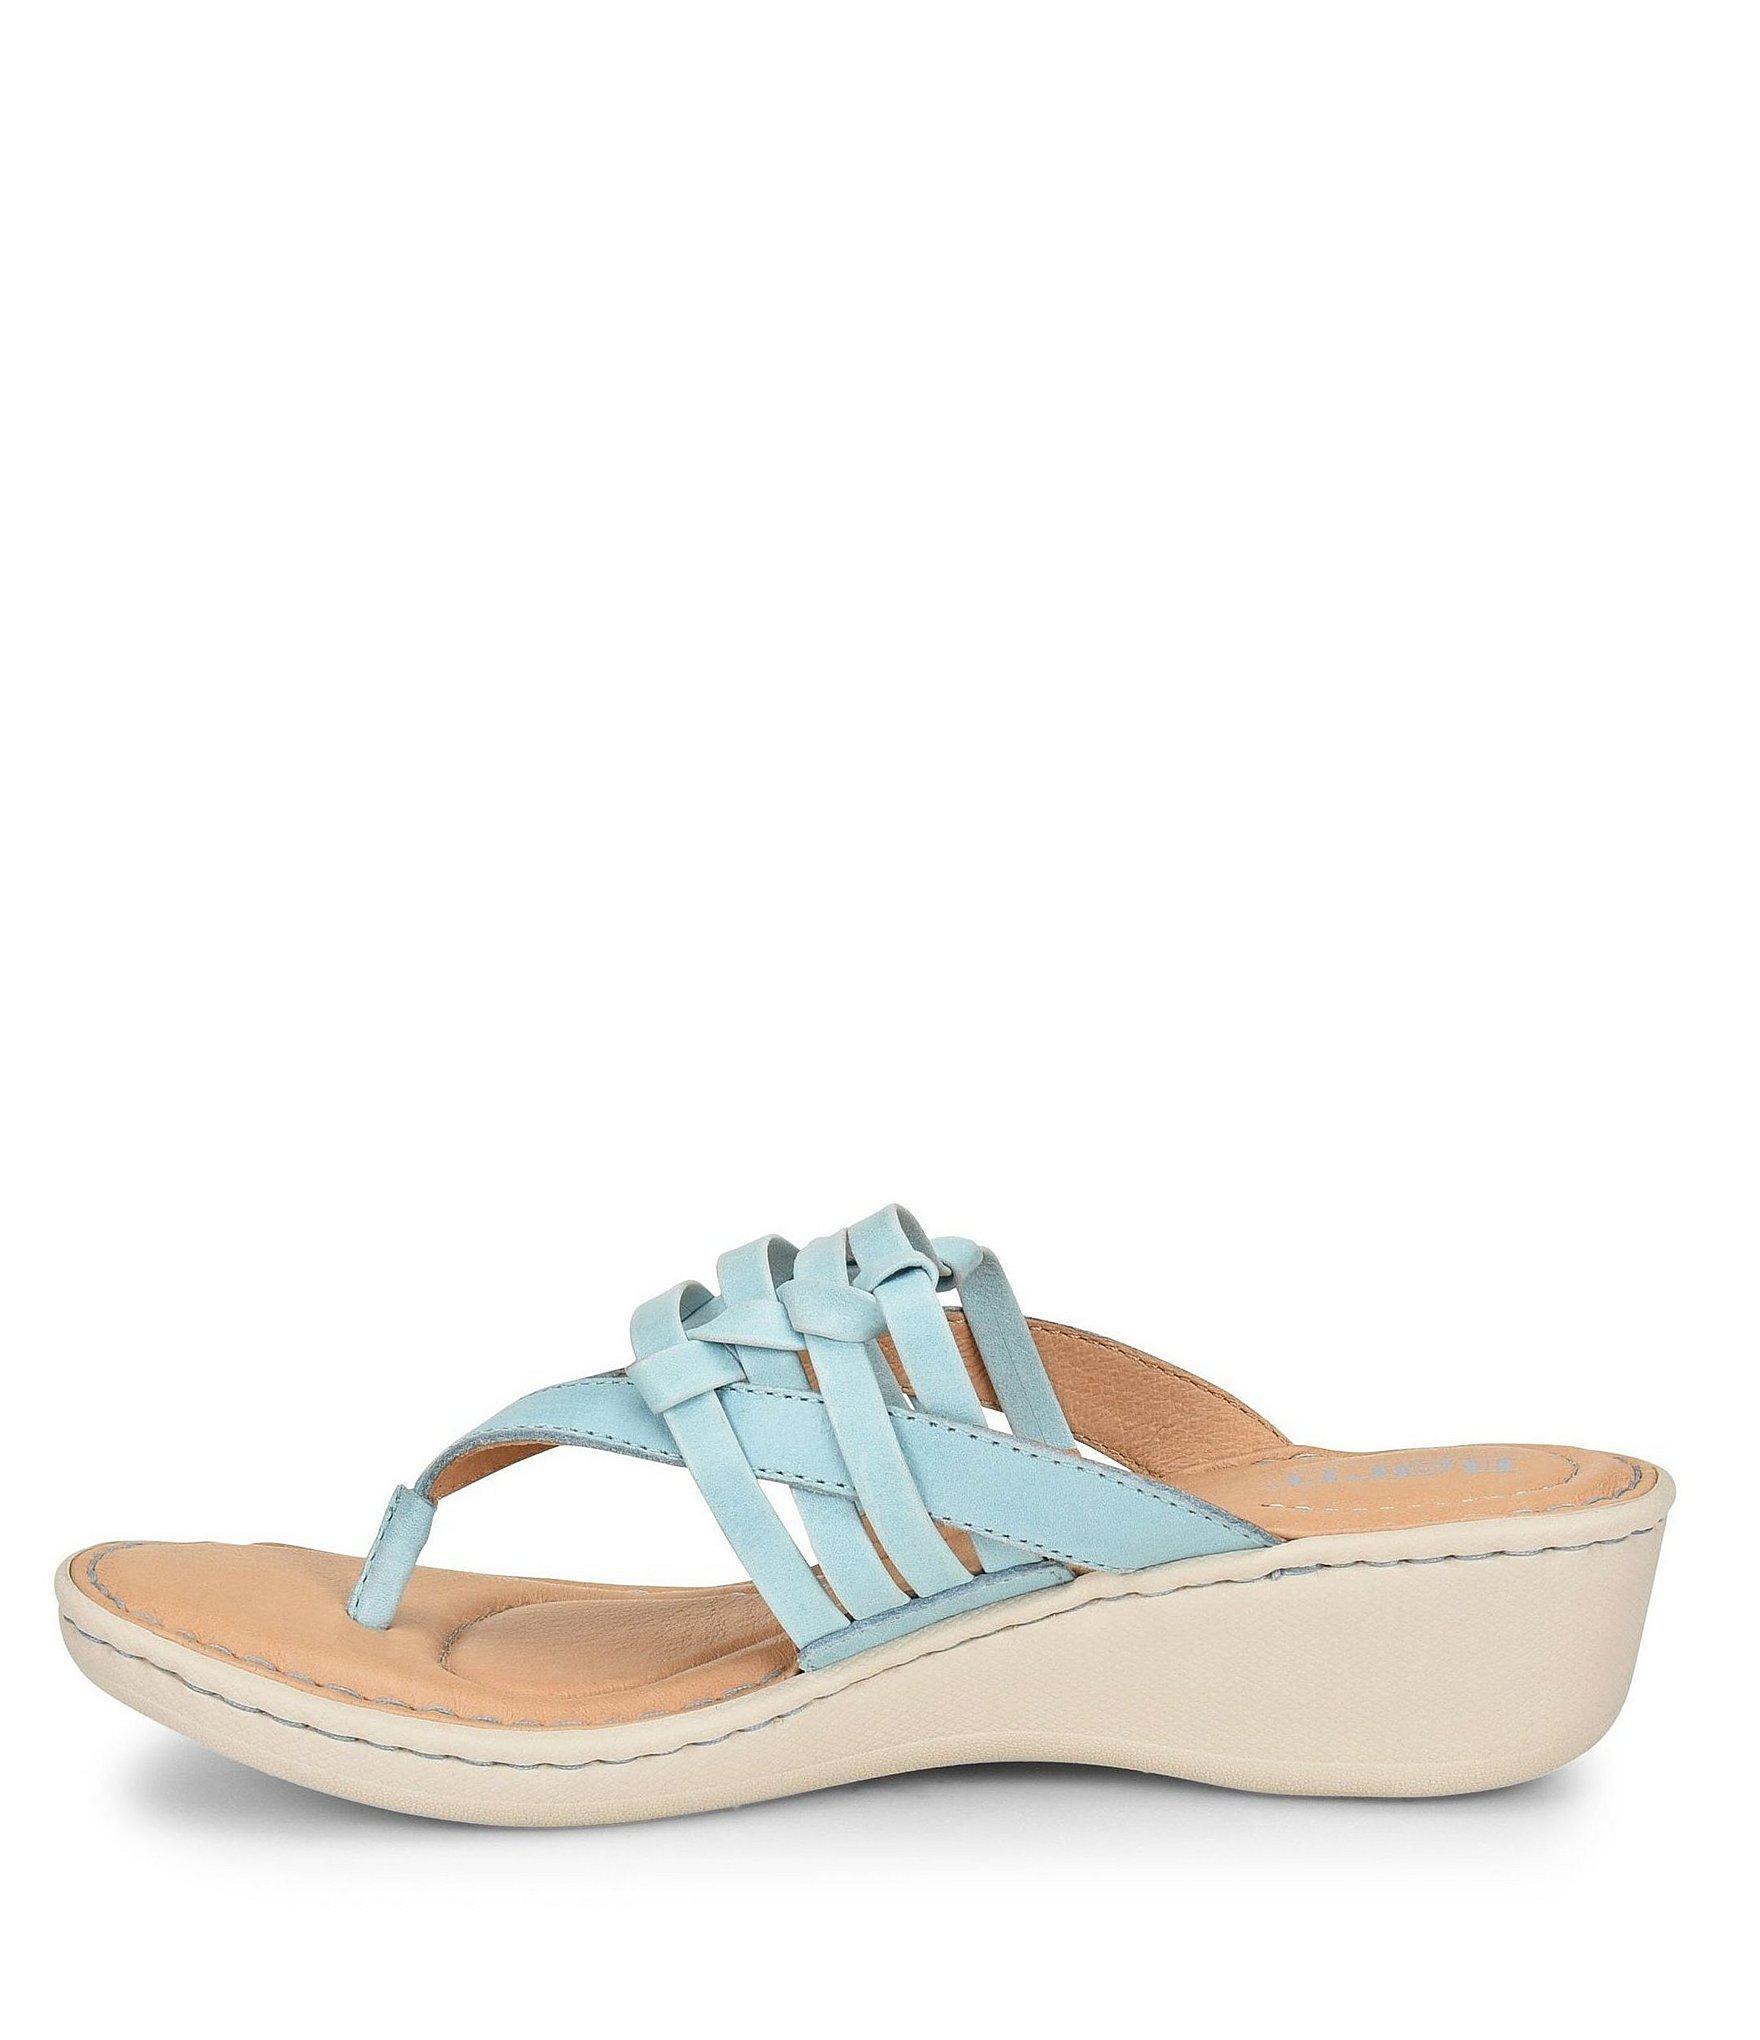 26987a010b53 Lyst - Born Tansey Thong Slide Wedge Sandals in Blue